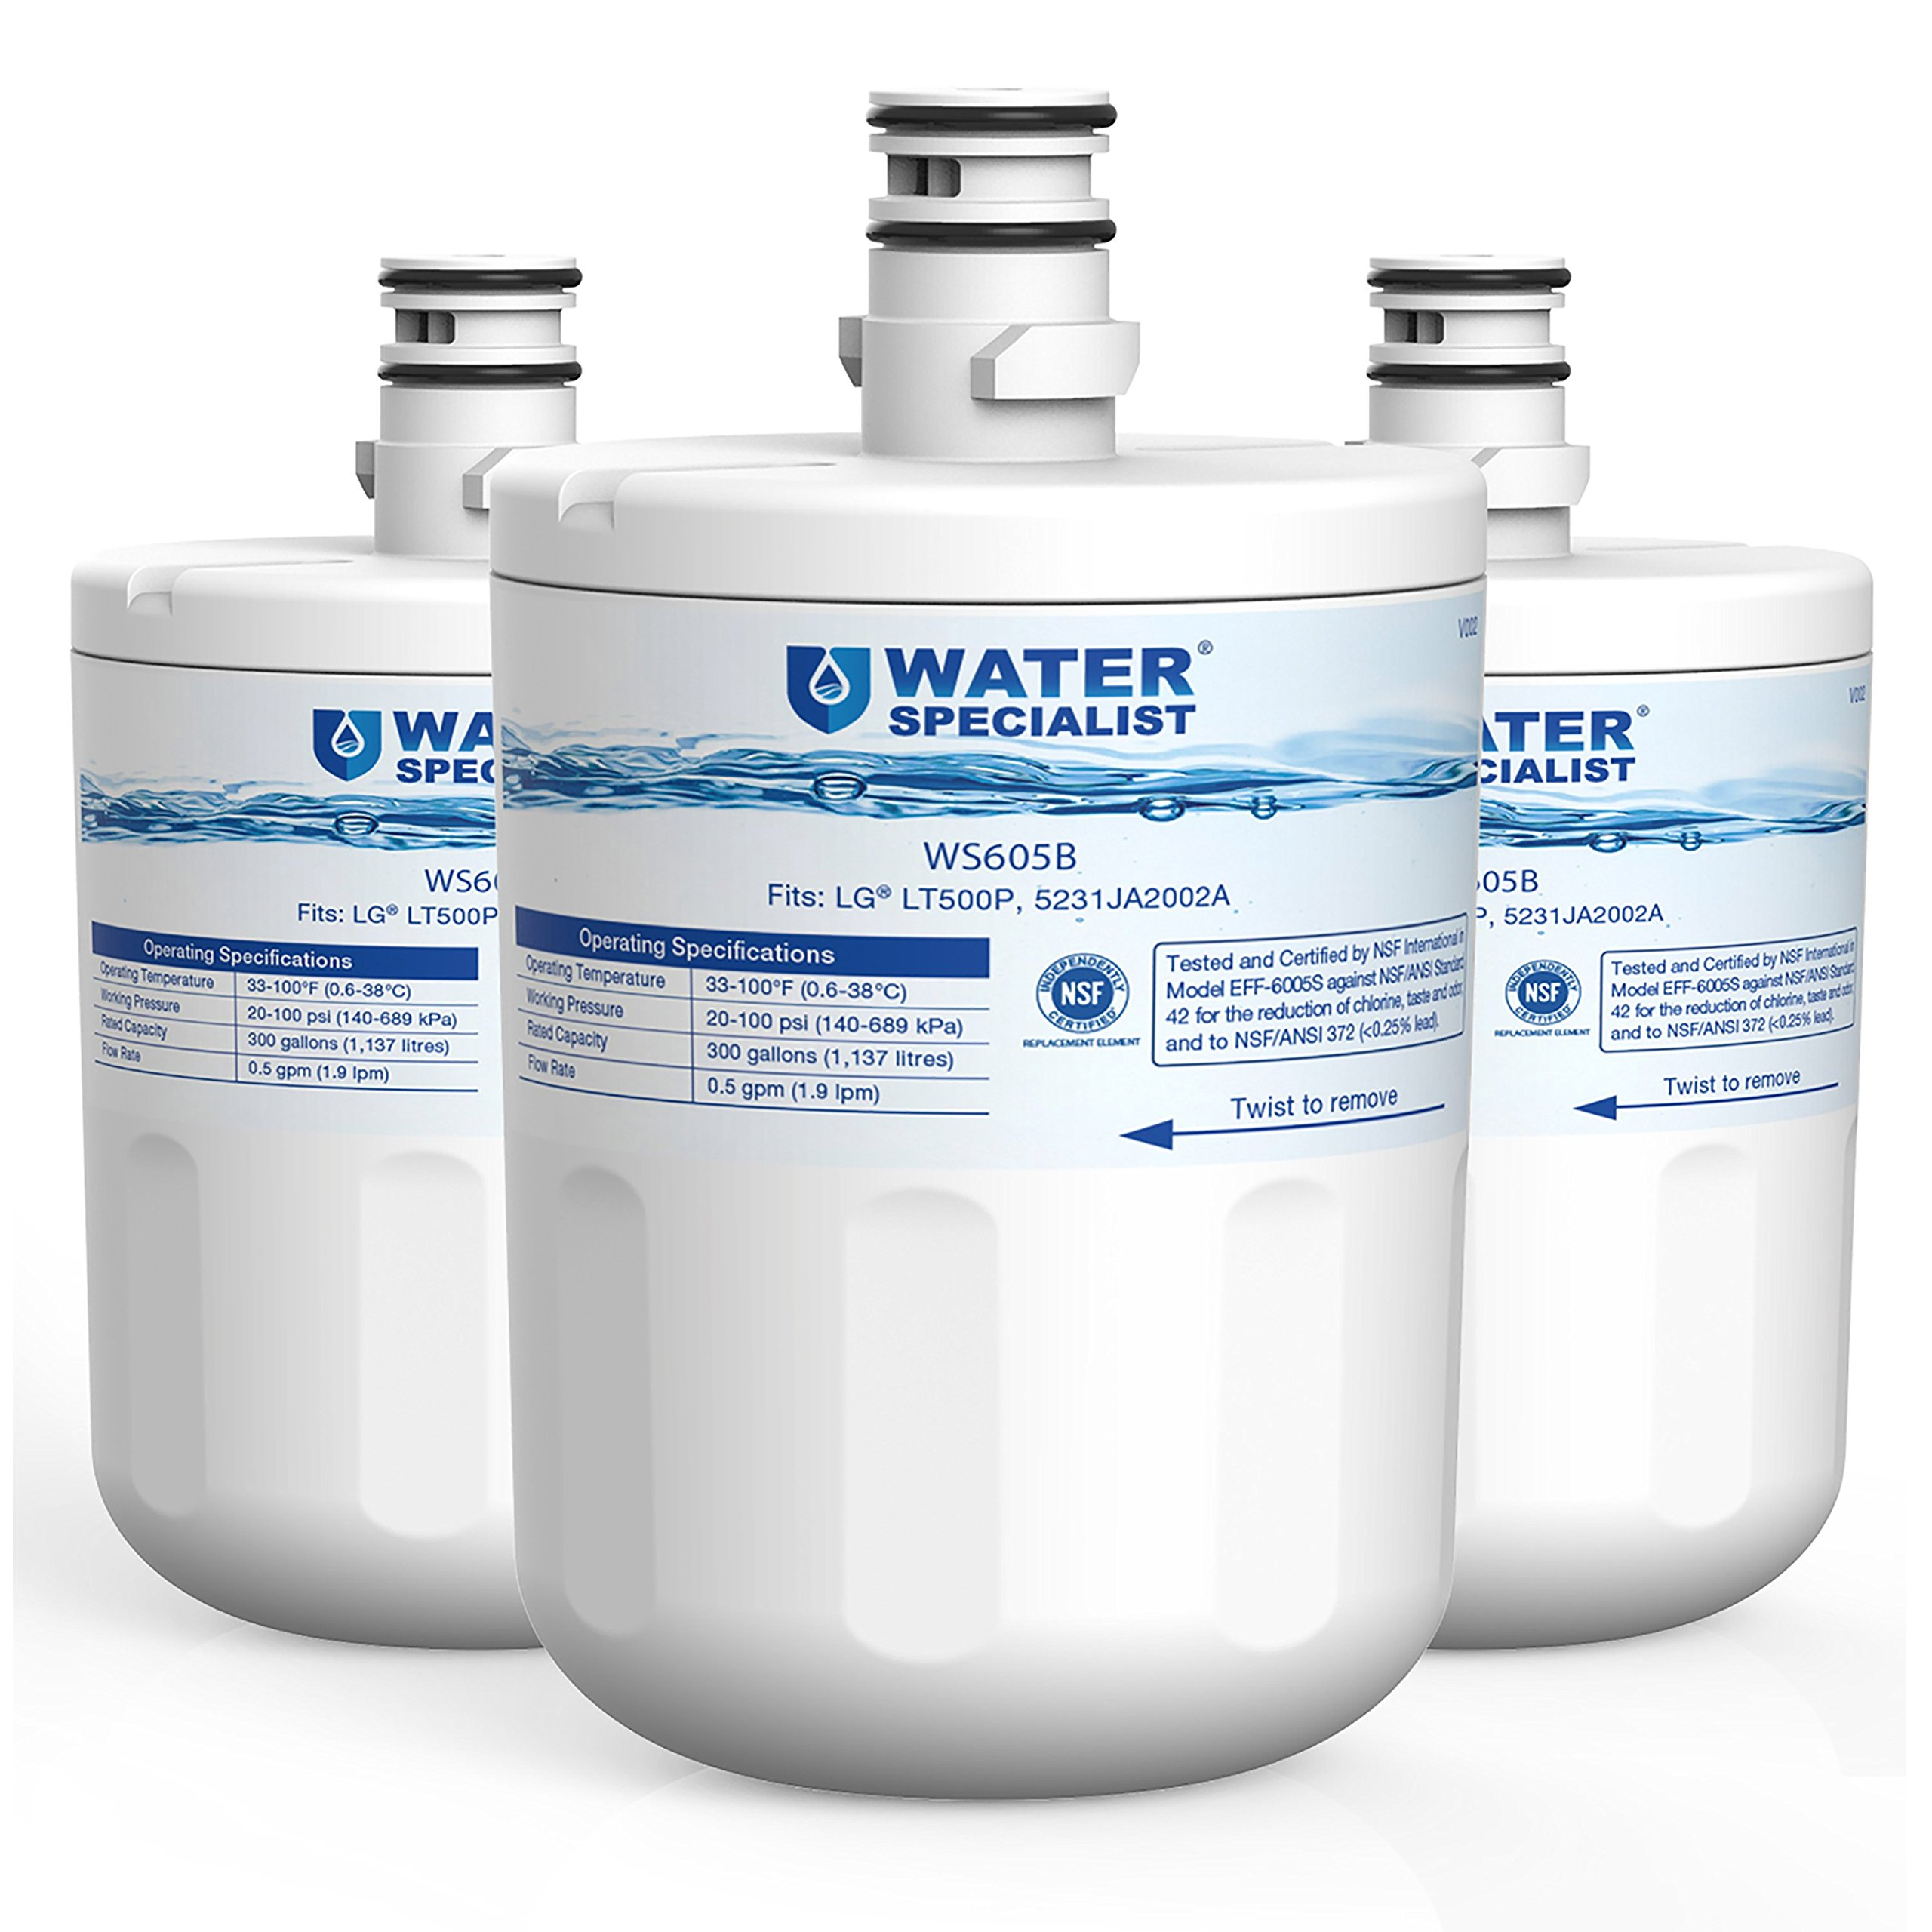 Waterspecialist LT500P Replacement Refrigerator Water Filter, Compatible with LG LT500P, 5231JA2002A, GEN11042FR-08, LFX25974ST, ADQ72910901, ADQ72910907, Kenmore 9890, 46-9890, 469890, 3 Pack